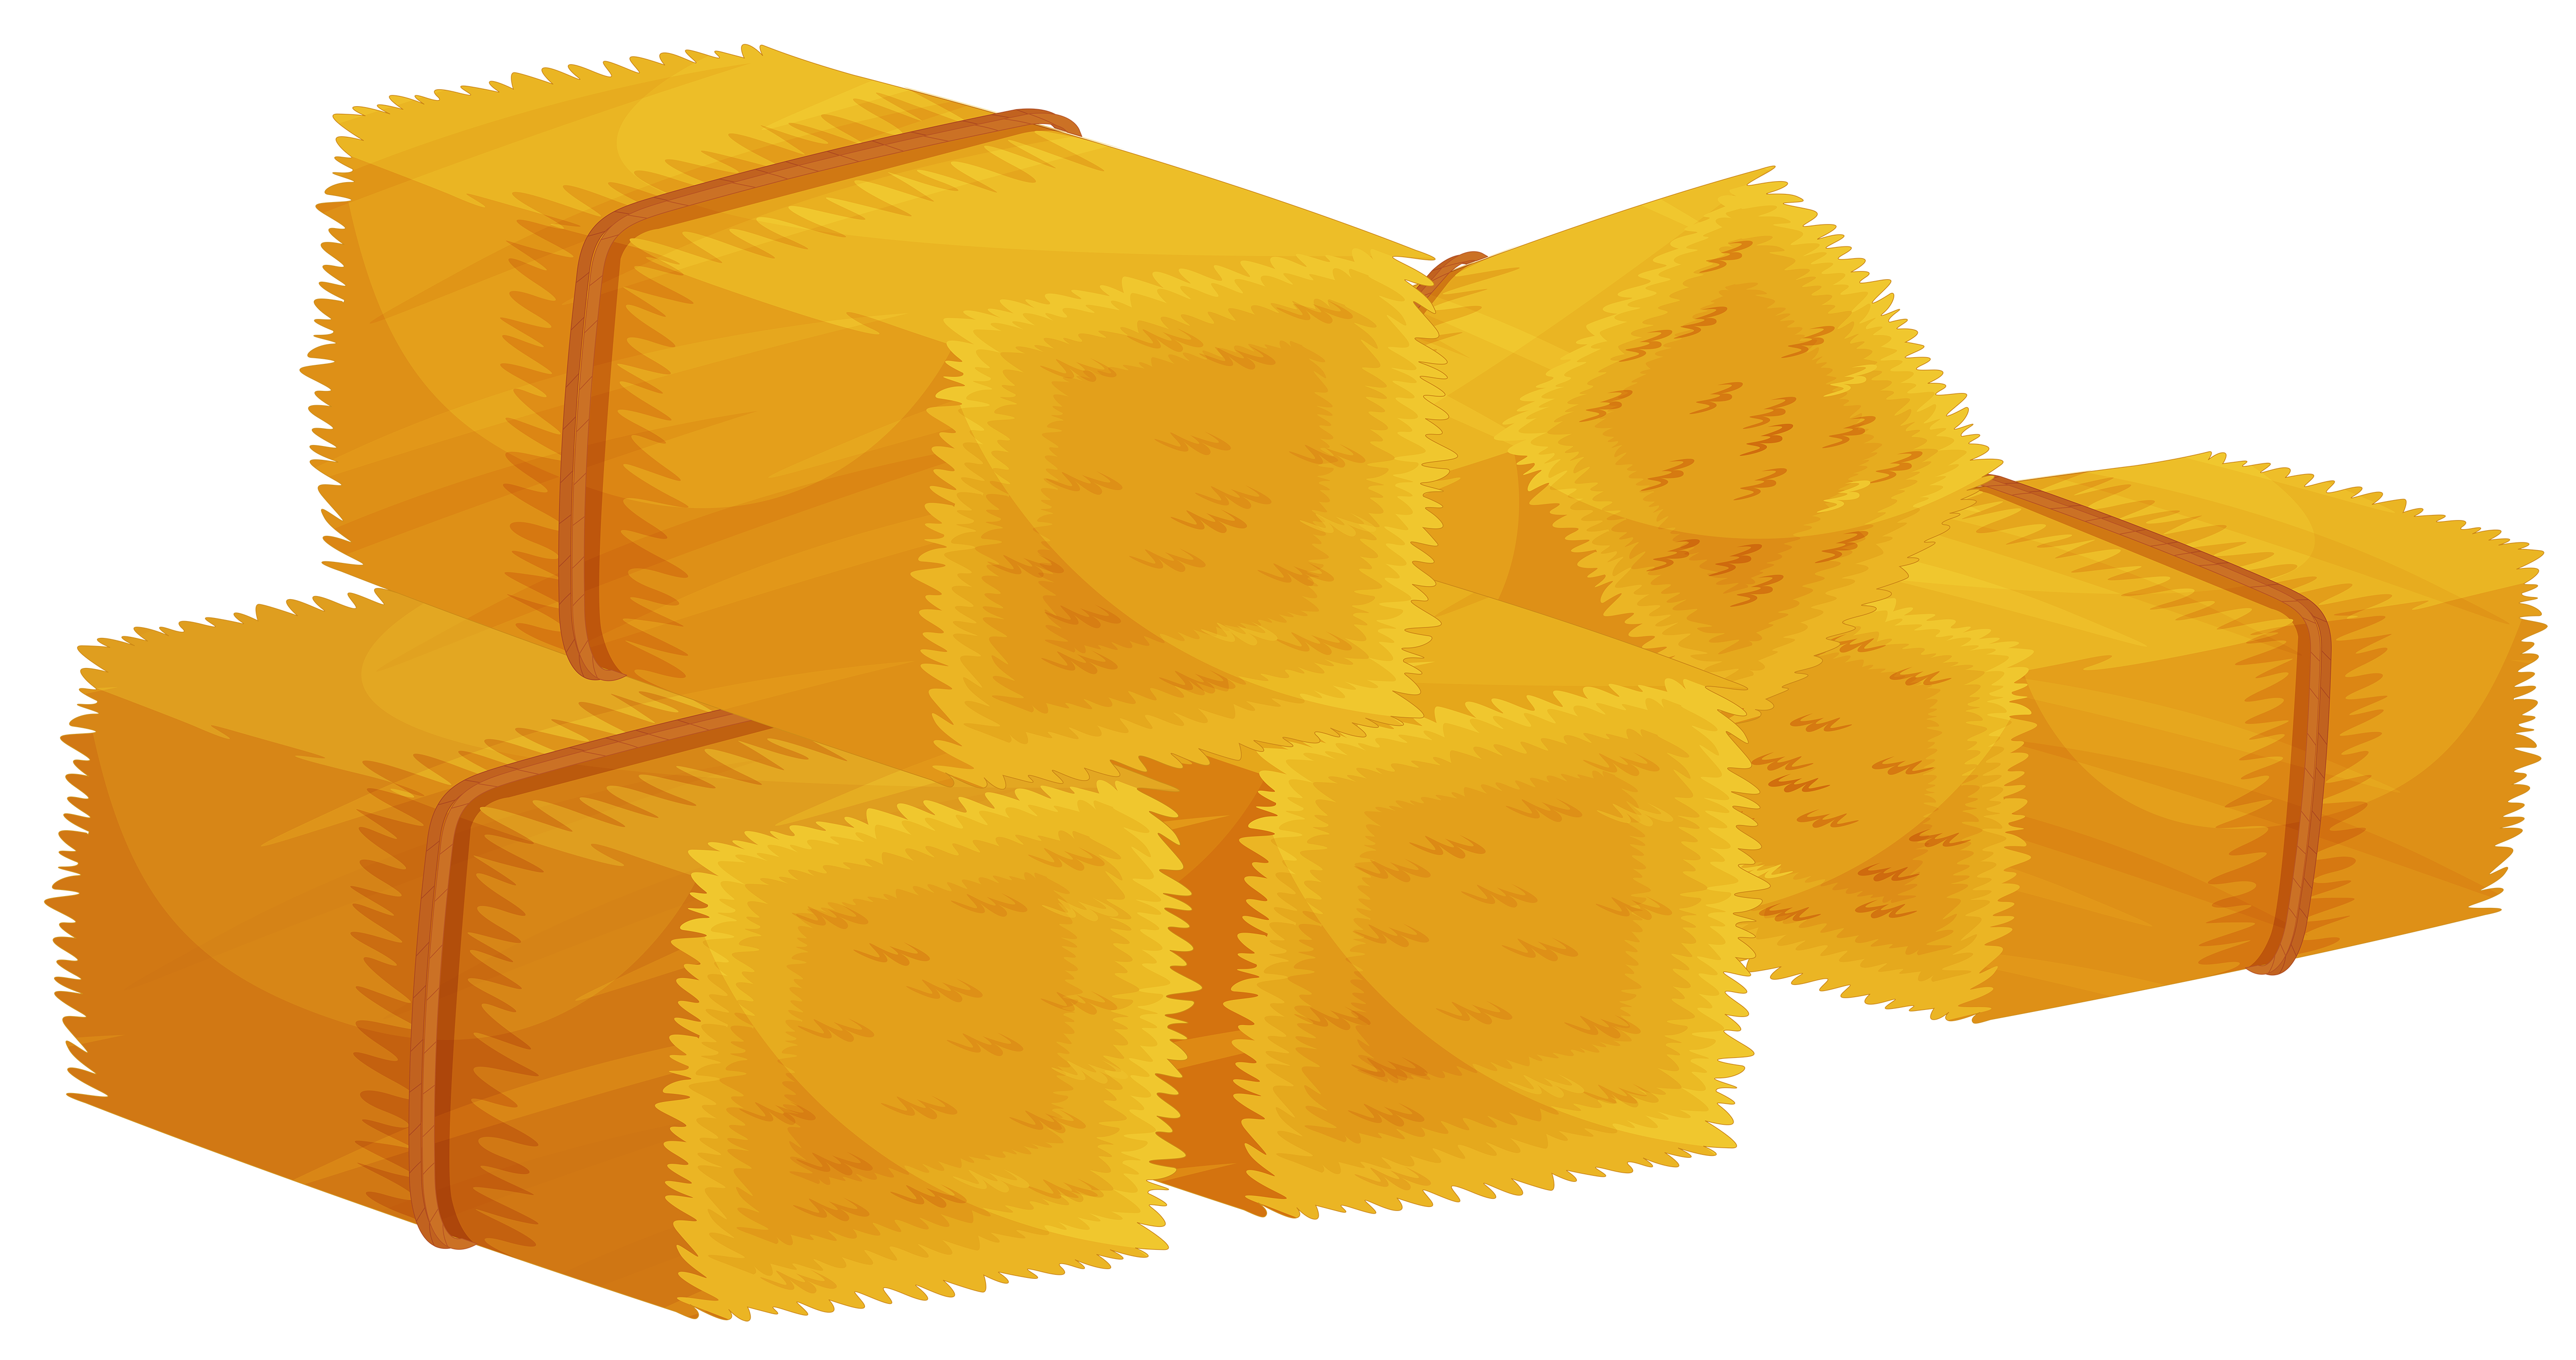 Hay bales clipart.